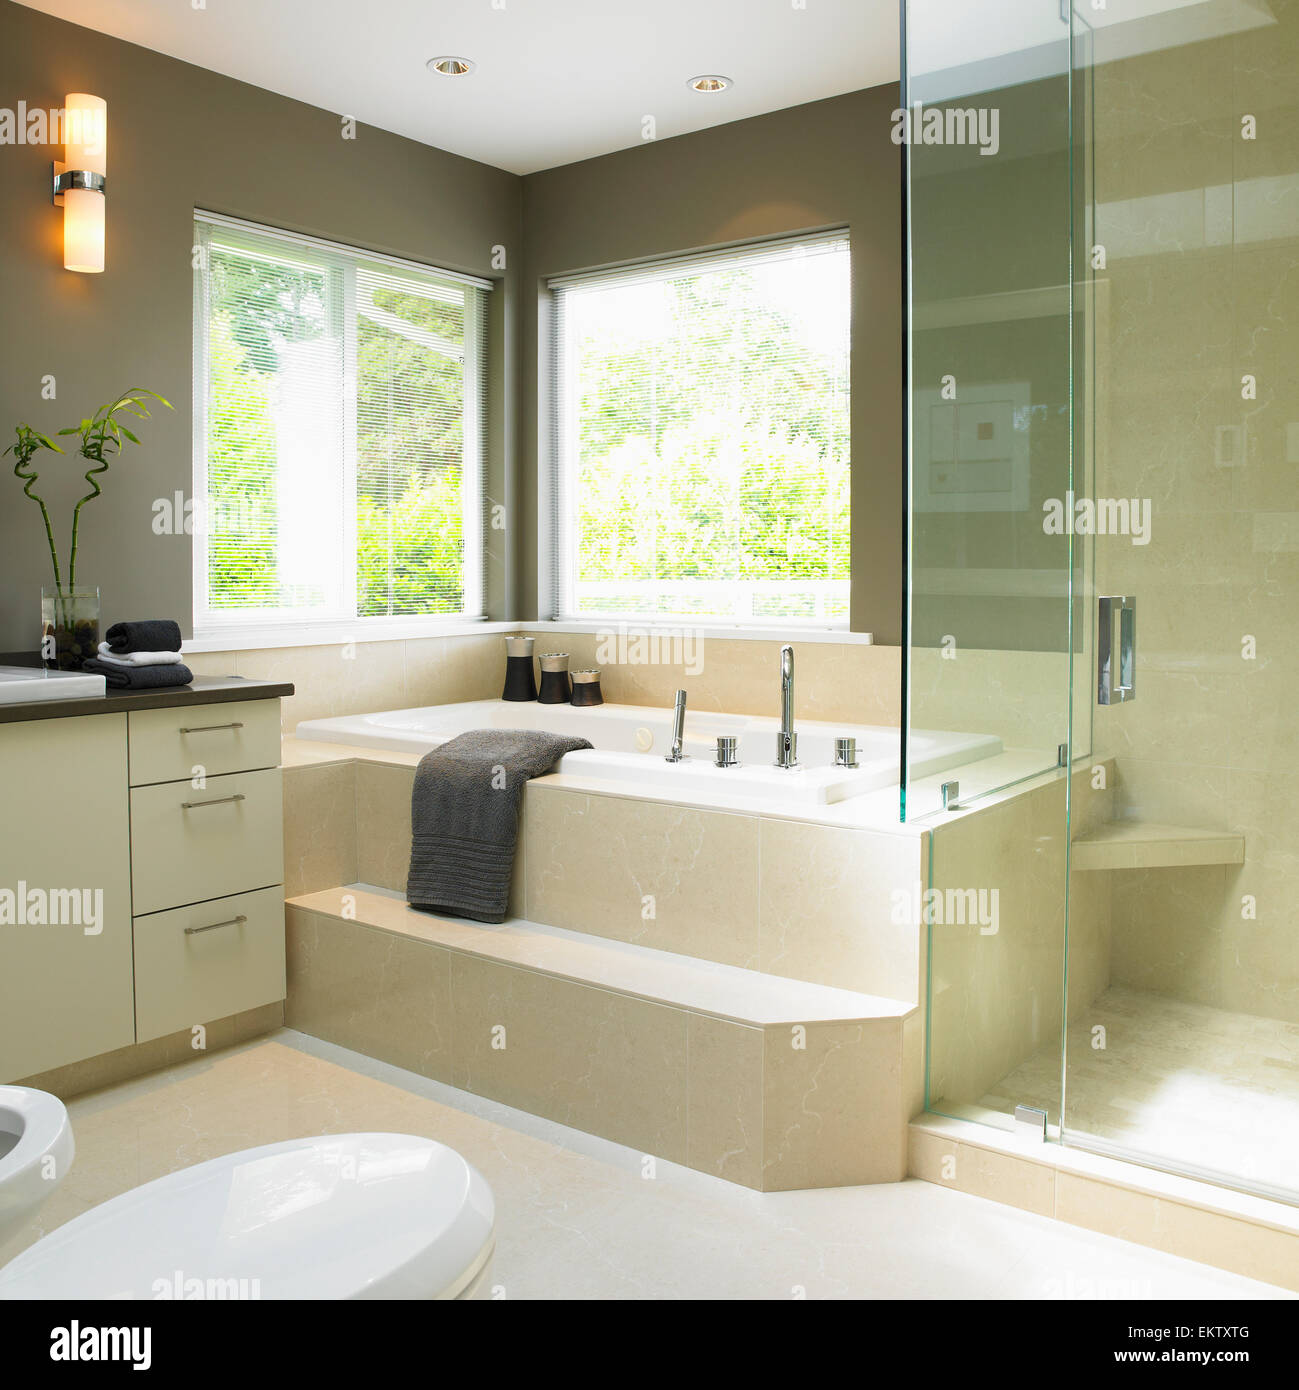 Soaker Tub Stock Photos & Soaker Tub Stock Images - Alamy